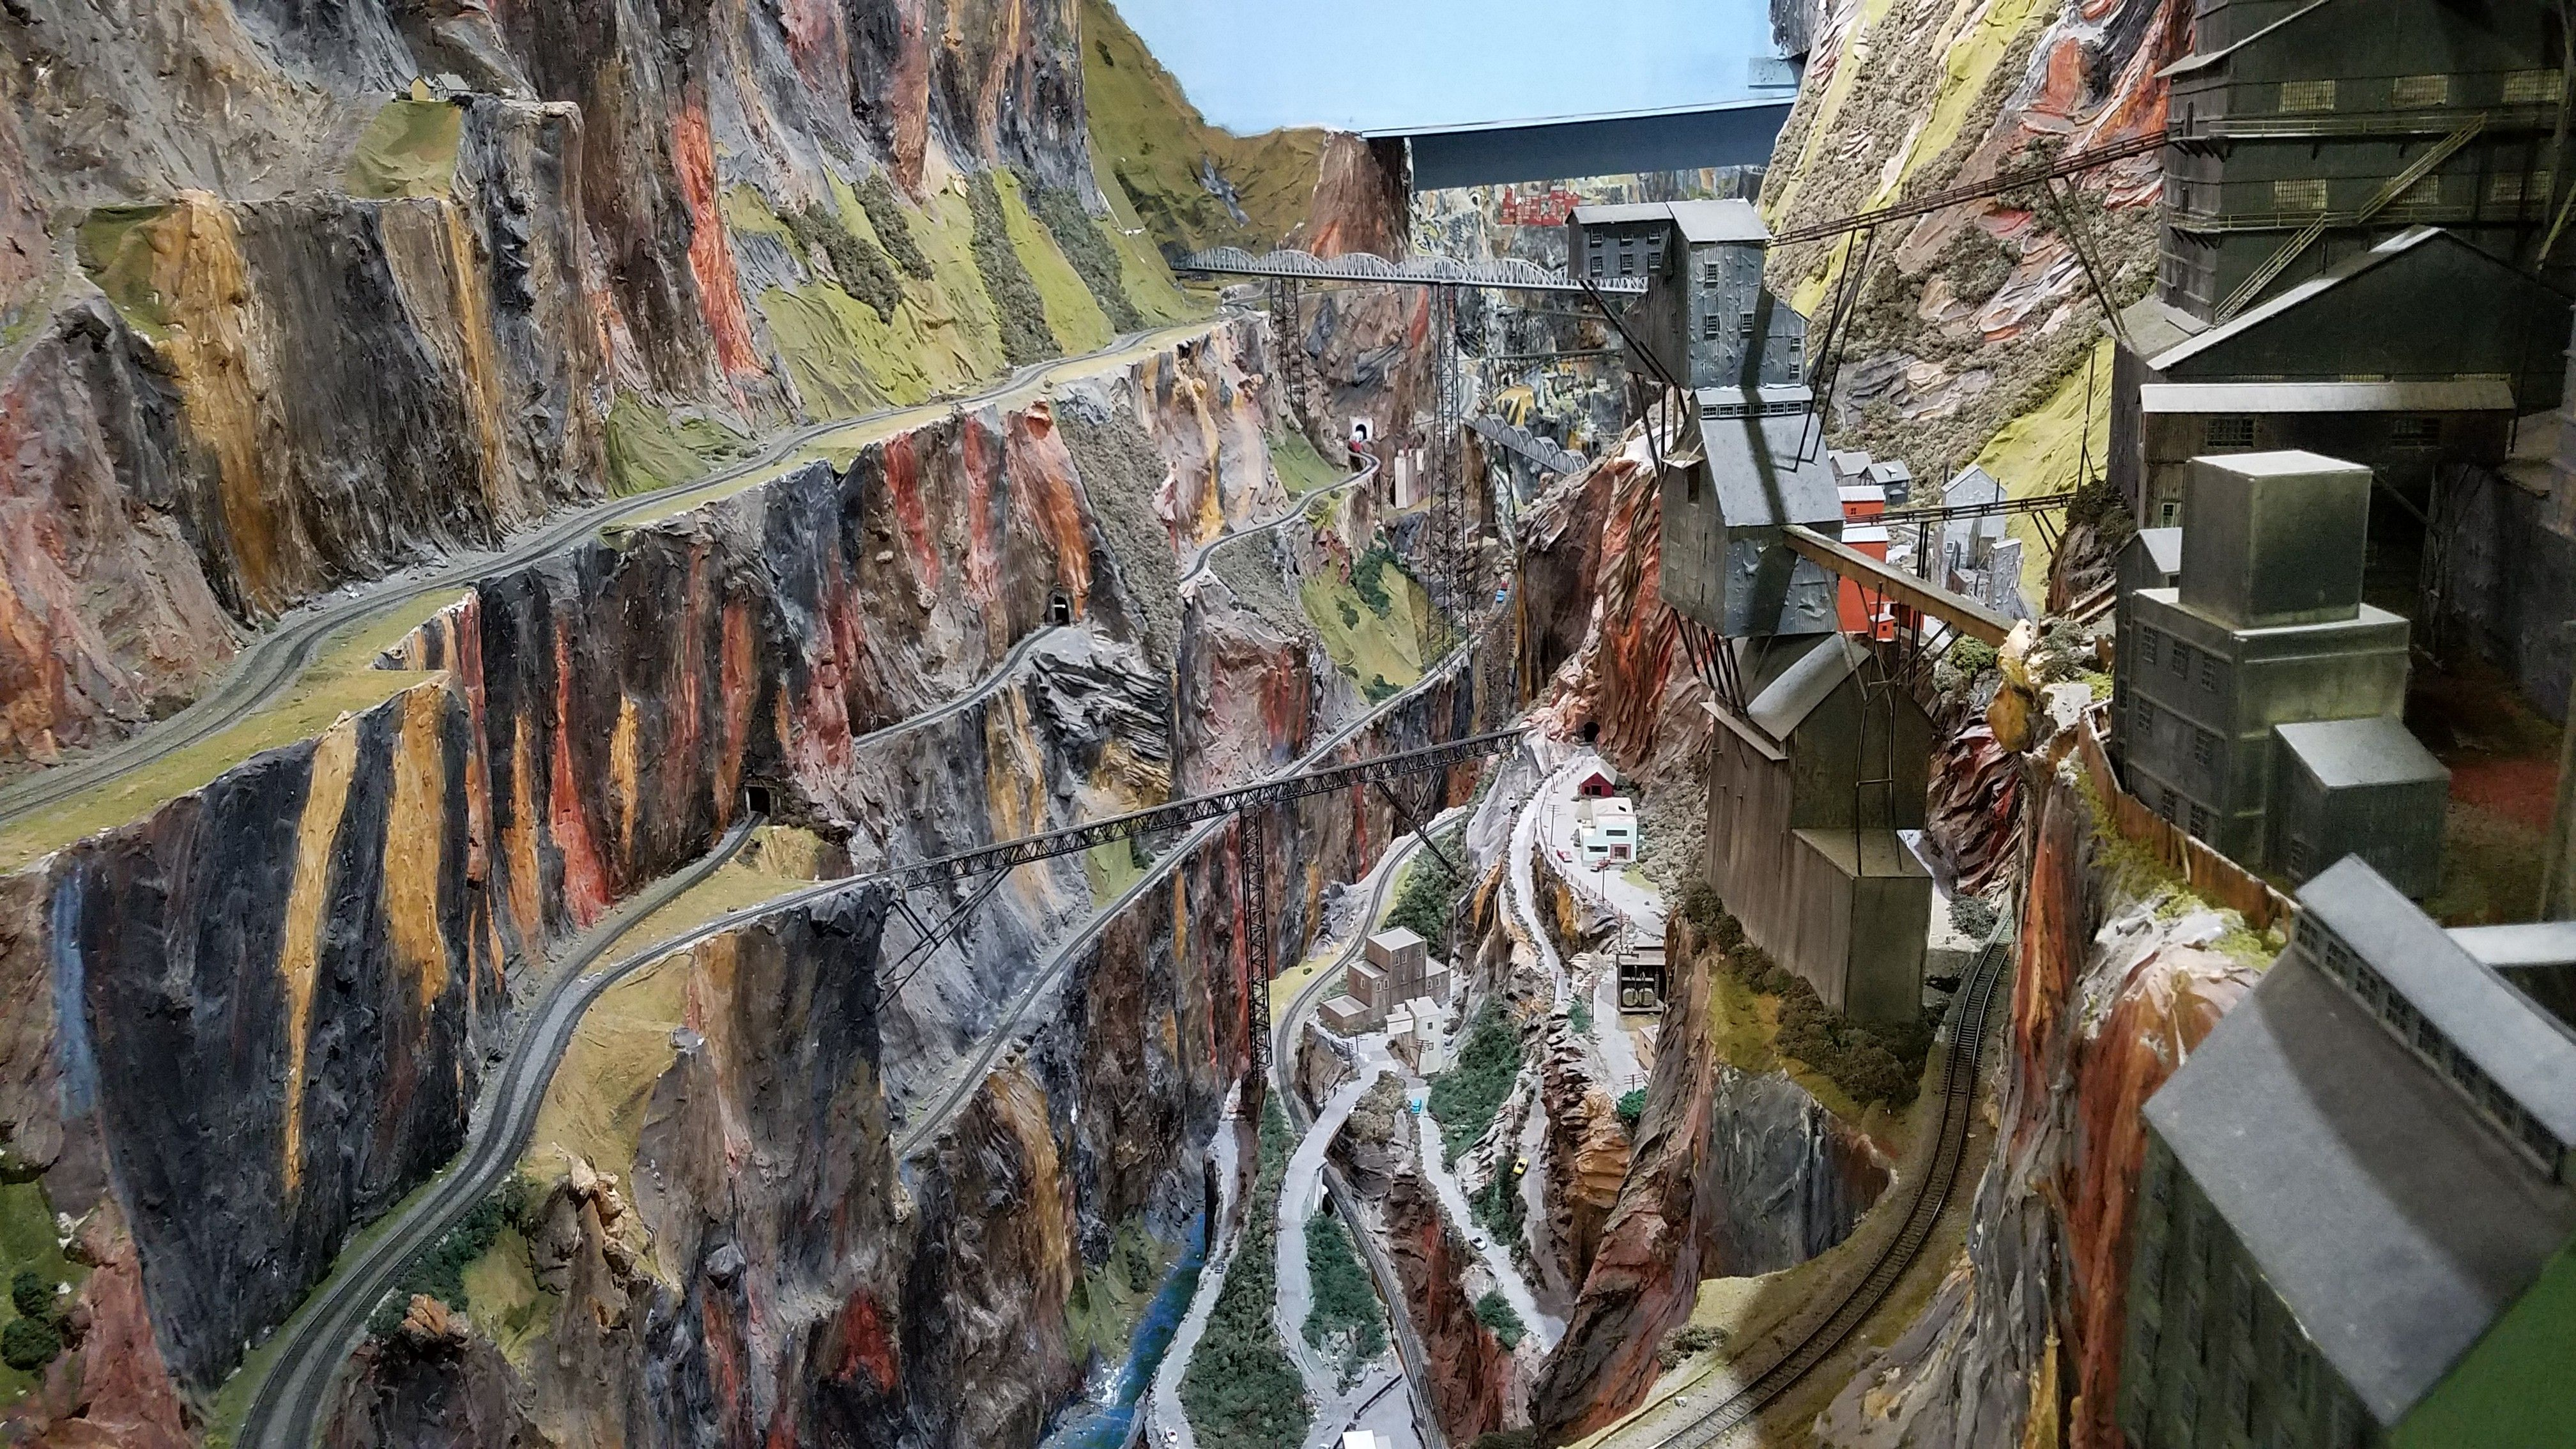 One of the most beautiful railroad track of northlandz